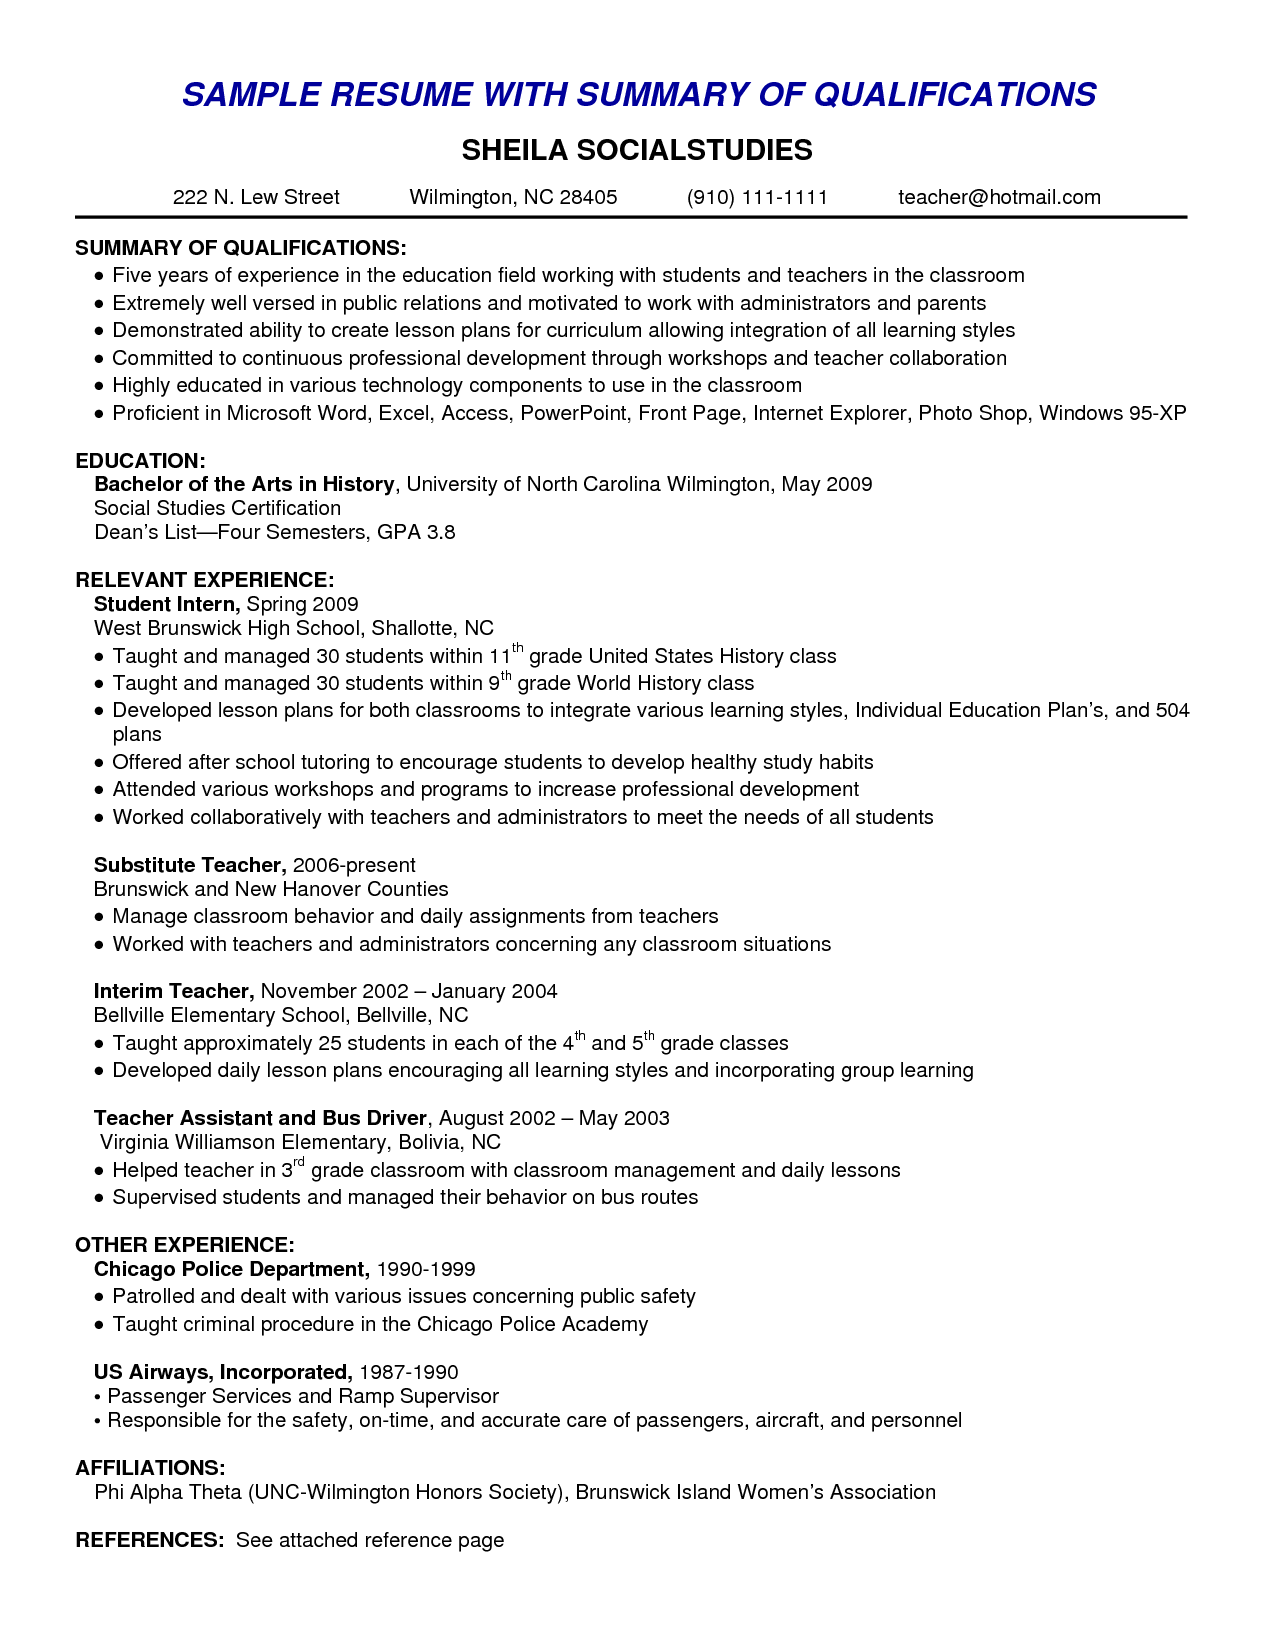 com page of business resume powerful summary of qualifications and summary of qualifications resume